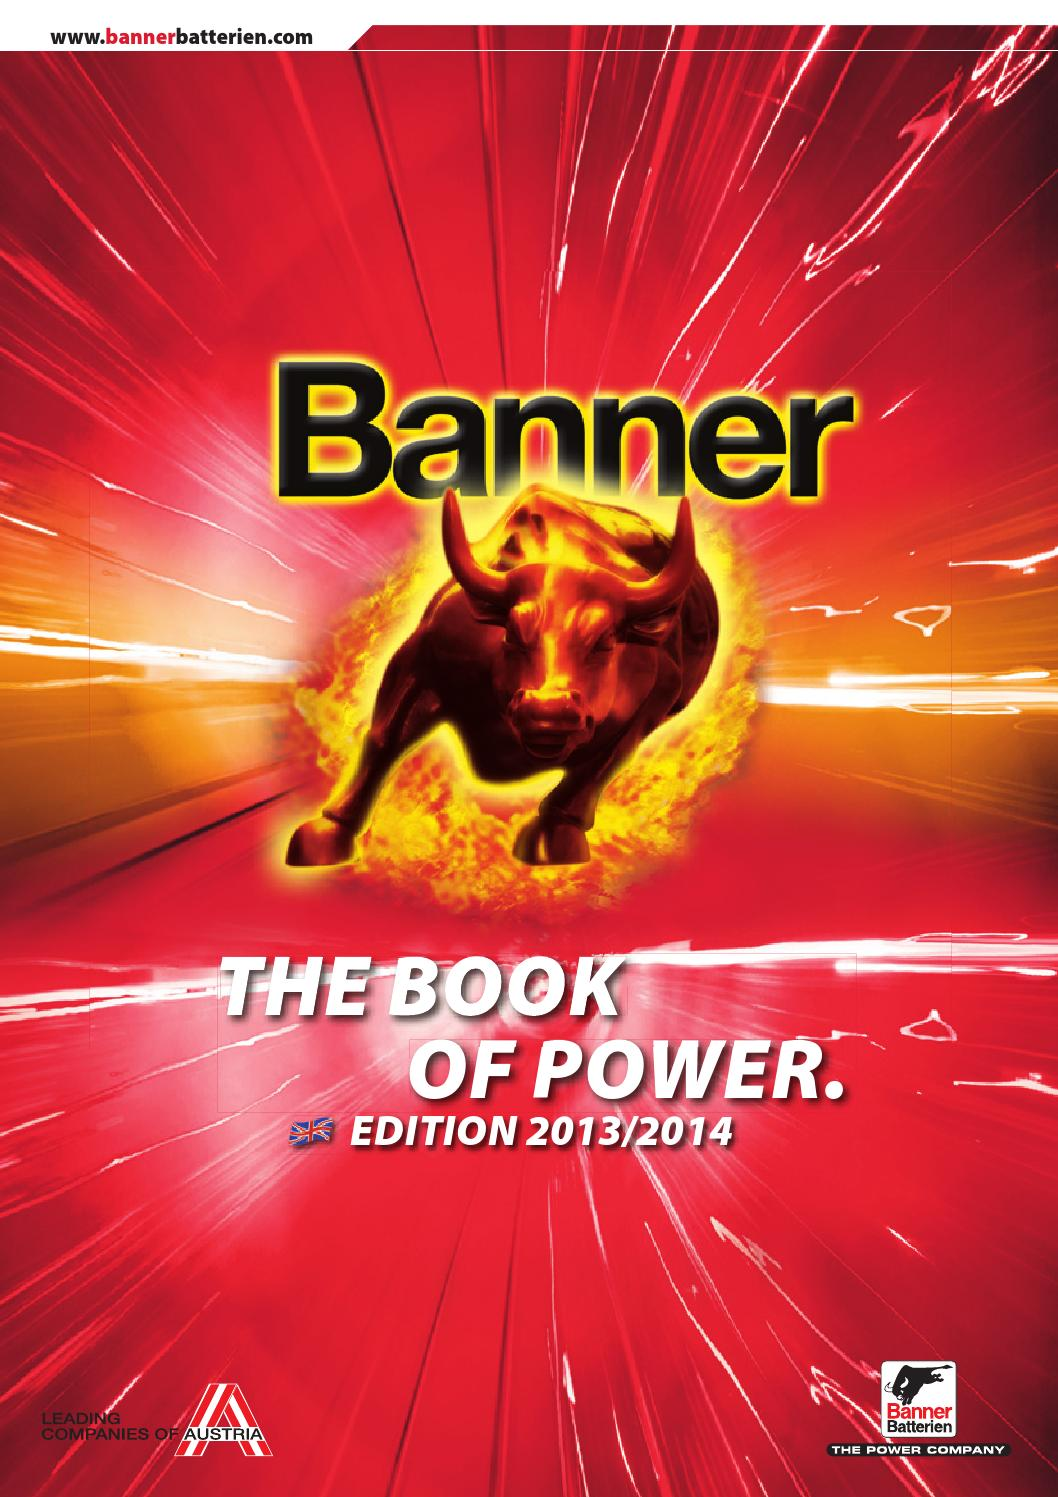 The Book Of Power Gb 2013 By Banner Batterien Issuu Citroen Berlingo Wiring Diagram Klr 650 Gmc